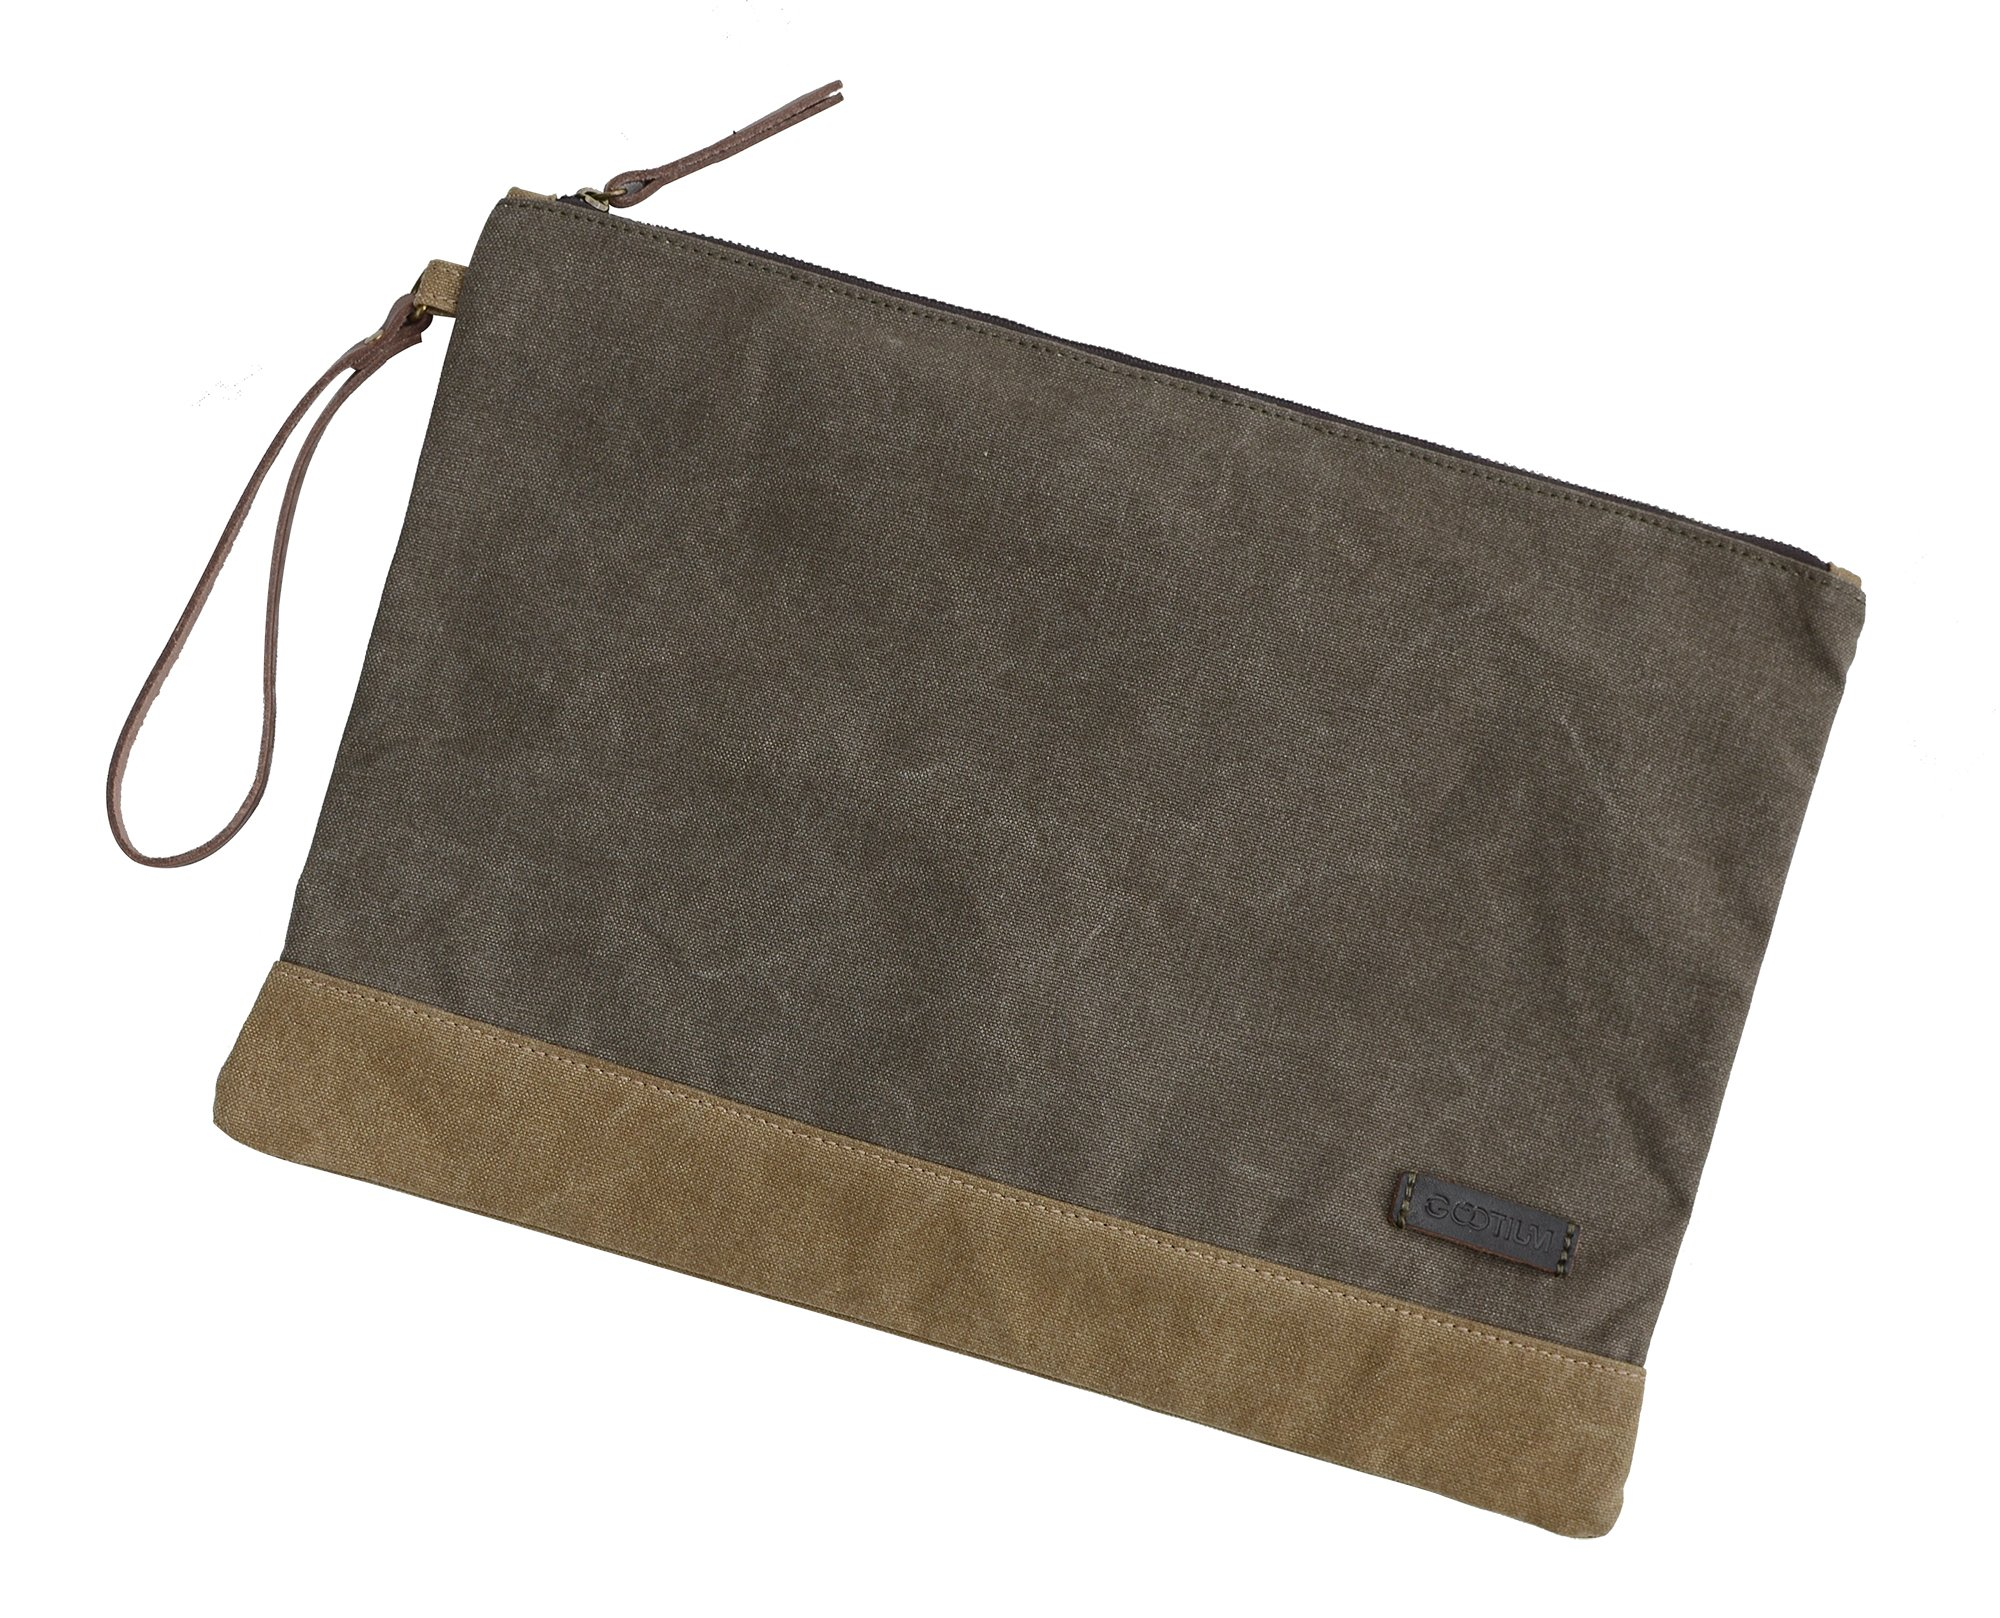 Gootium Waxed Canvas Multipurpose File Bag for Artists and Office, 13''x9.4'', A4 Size, Water Proof, Green